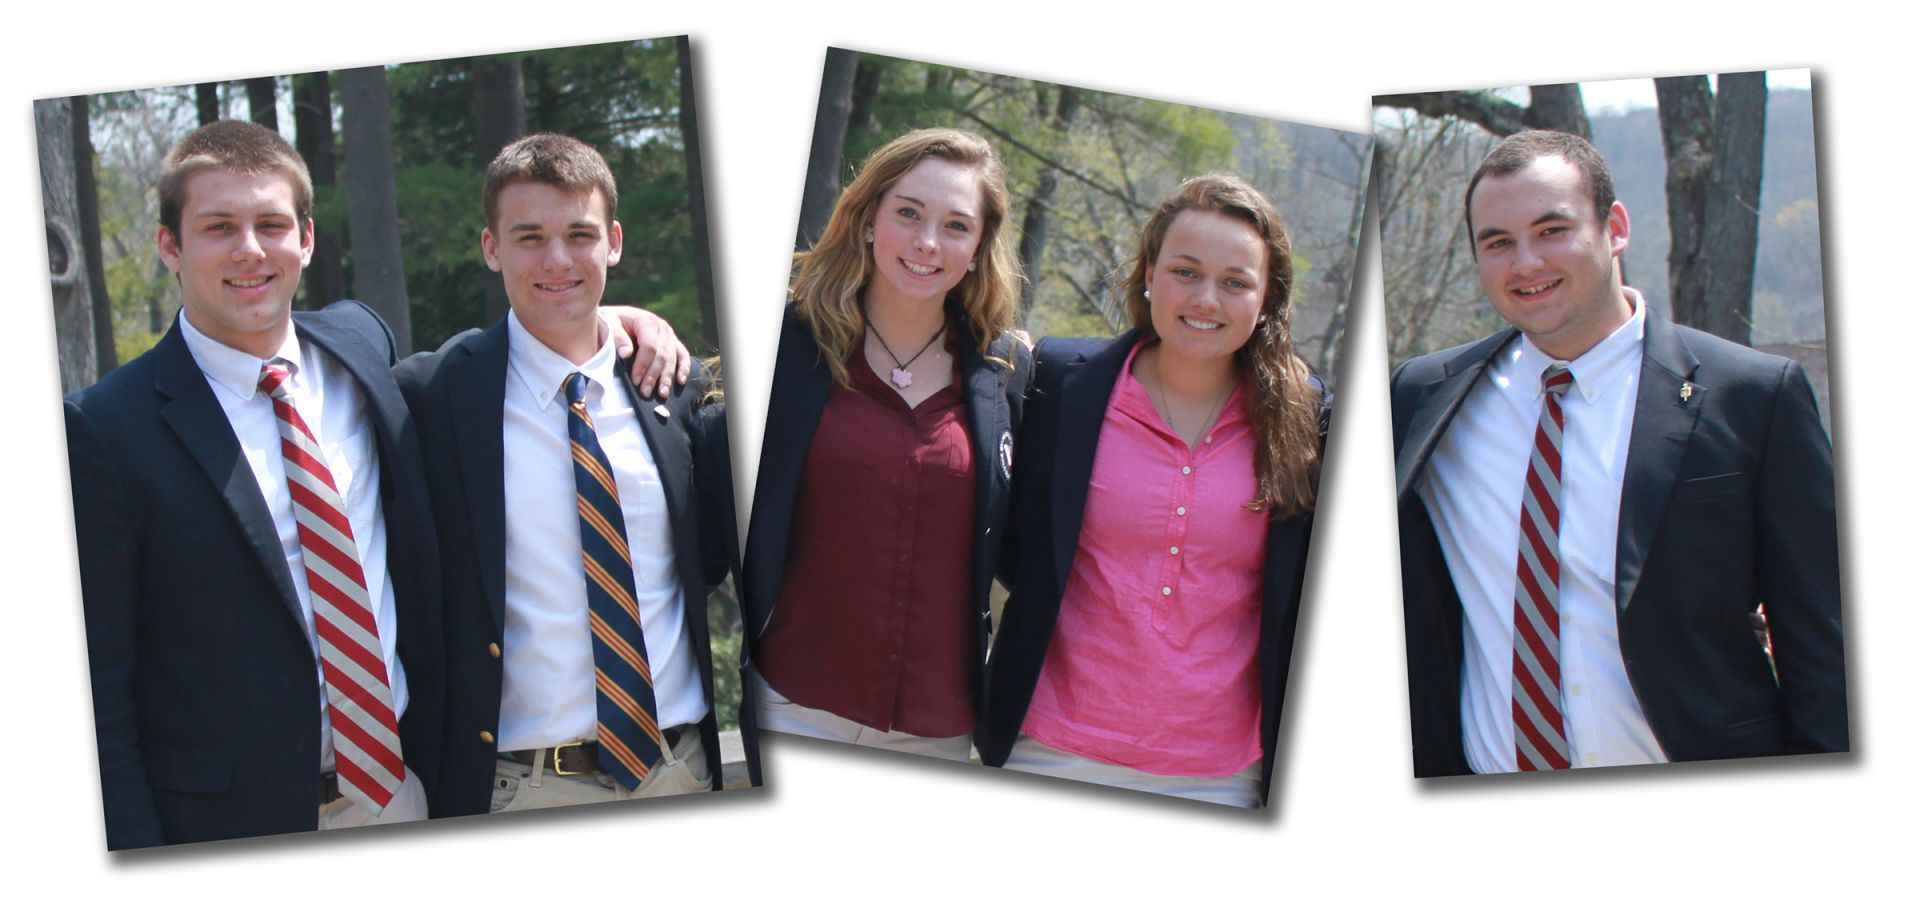 2016-2017 Prefects (L to R): Matt Danner, Eric Hoffman, Calista Connors, Grace van Tartwijk, Ollie Williams